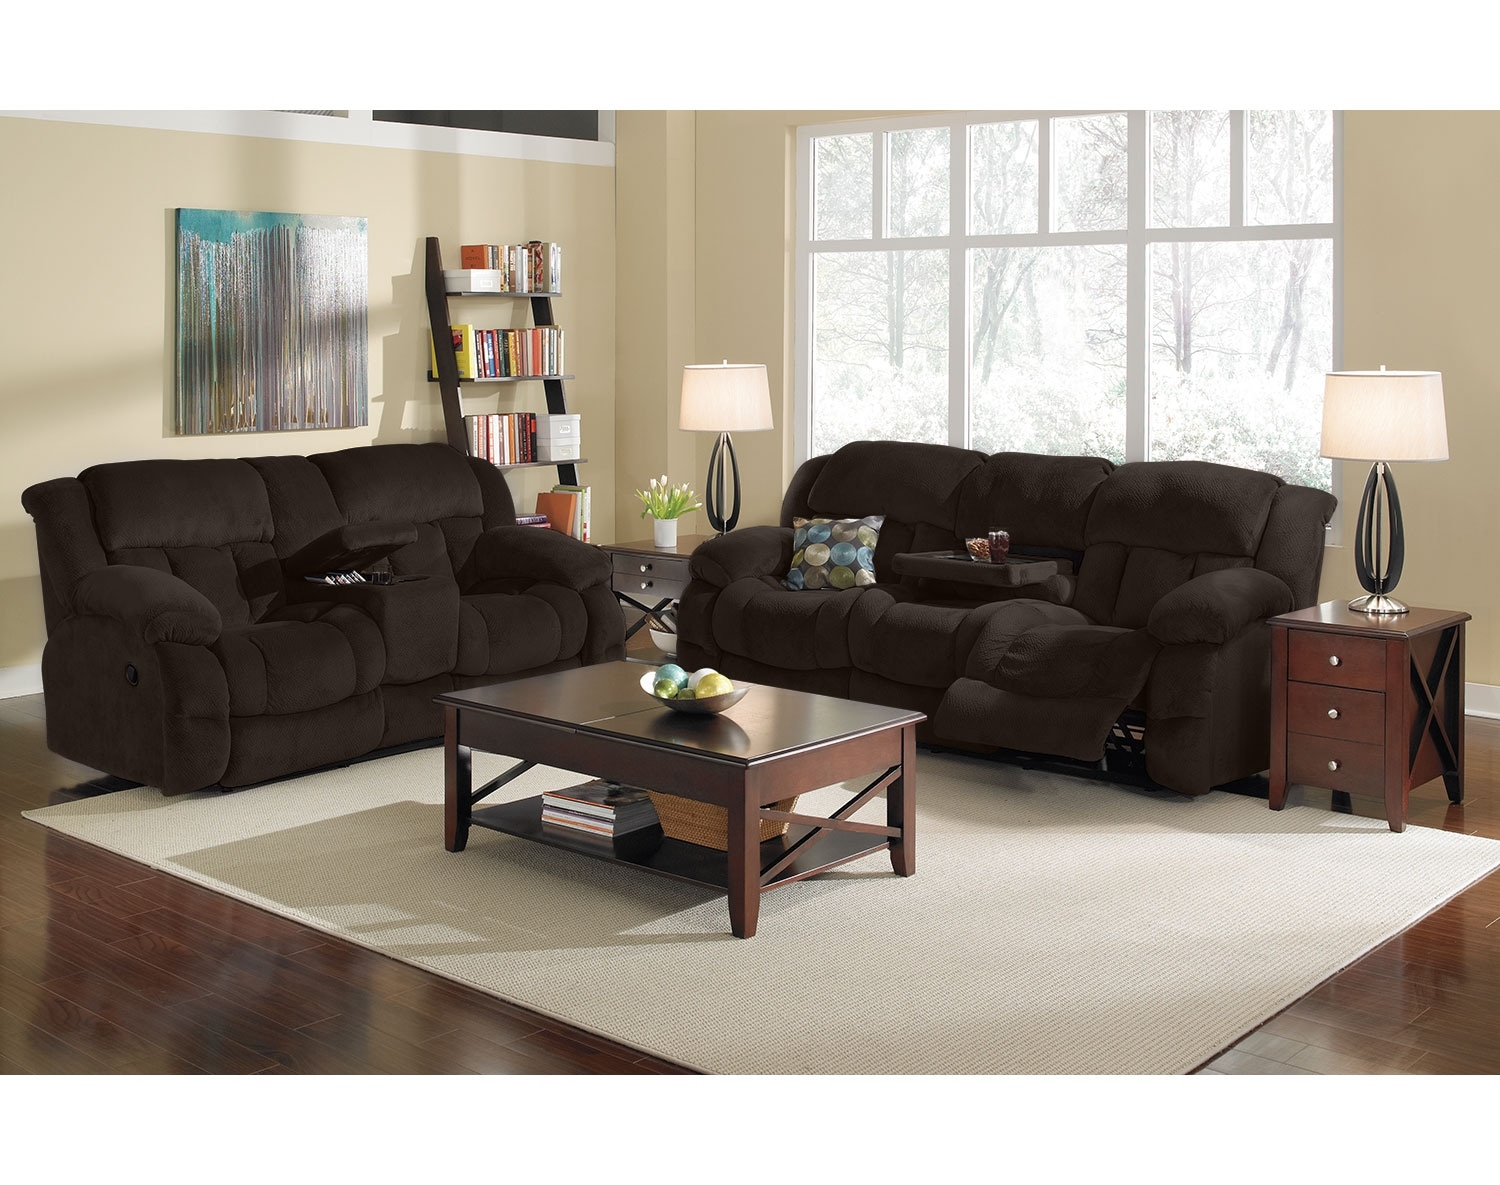 Value City Living Room Sets The Park City Collection Chocolate Value City Furniture